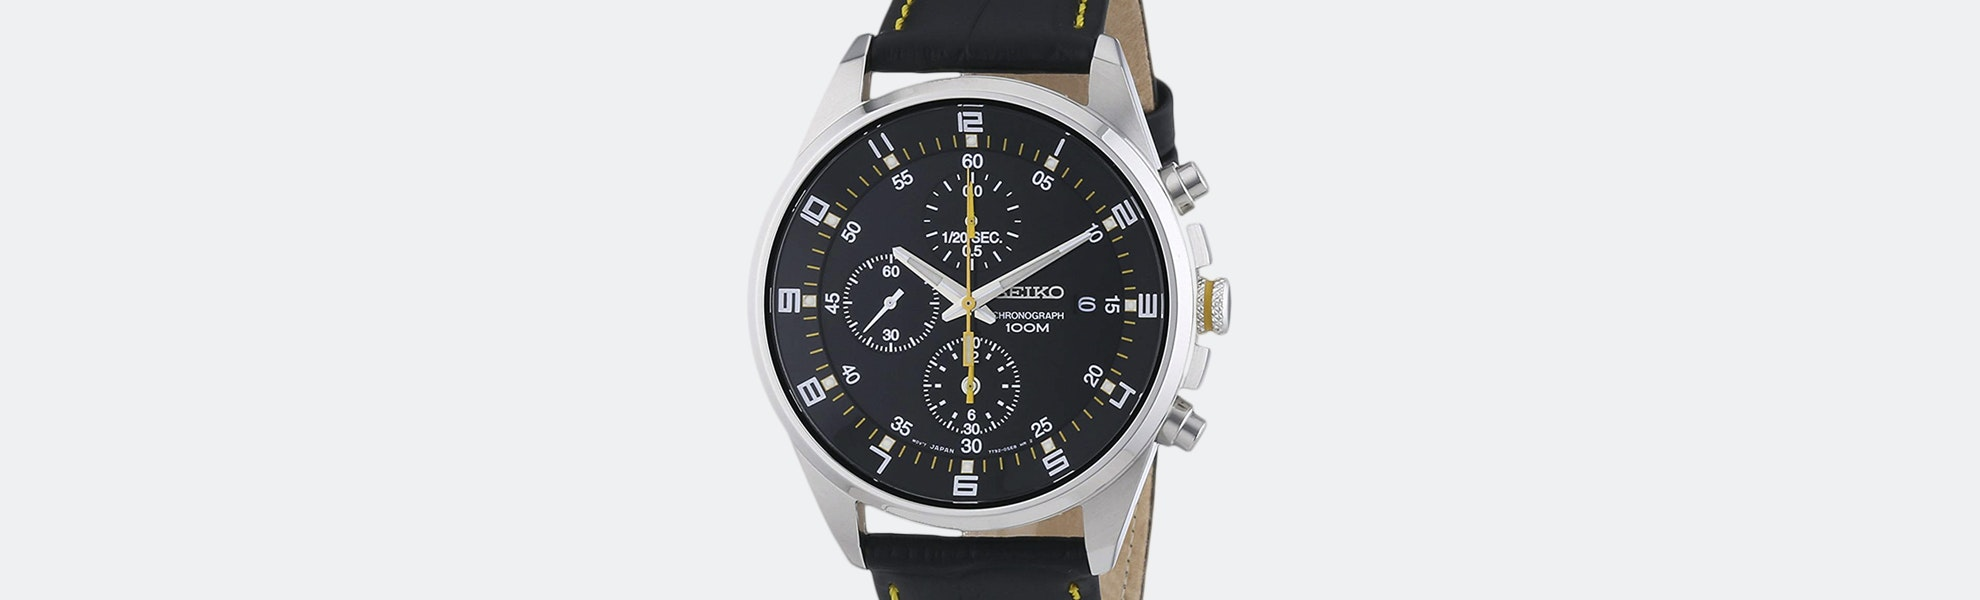 Seiko SNDC Chronograph Quartz Watch